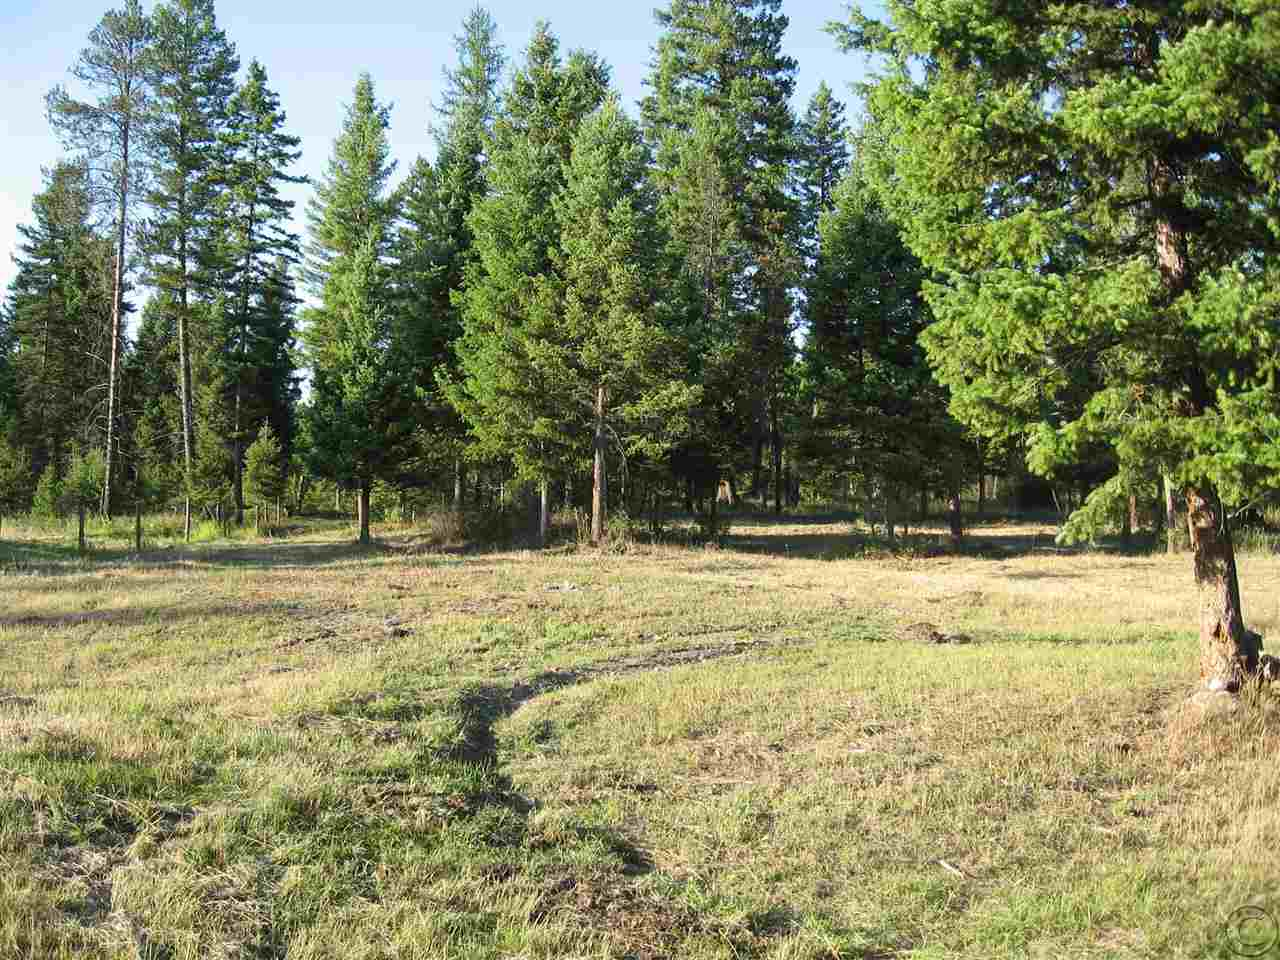 2.17 acres in Whitefish, Montana